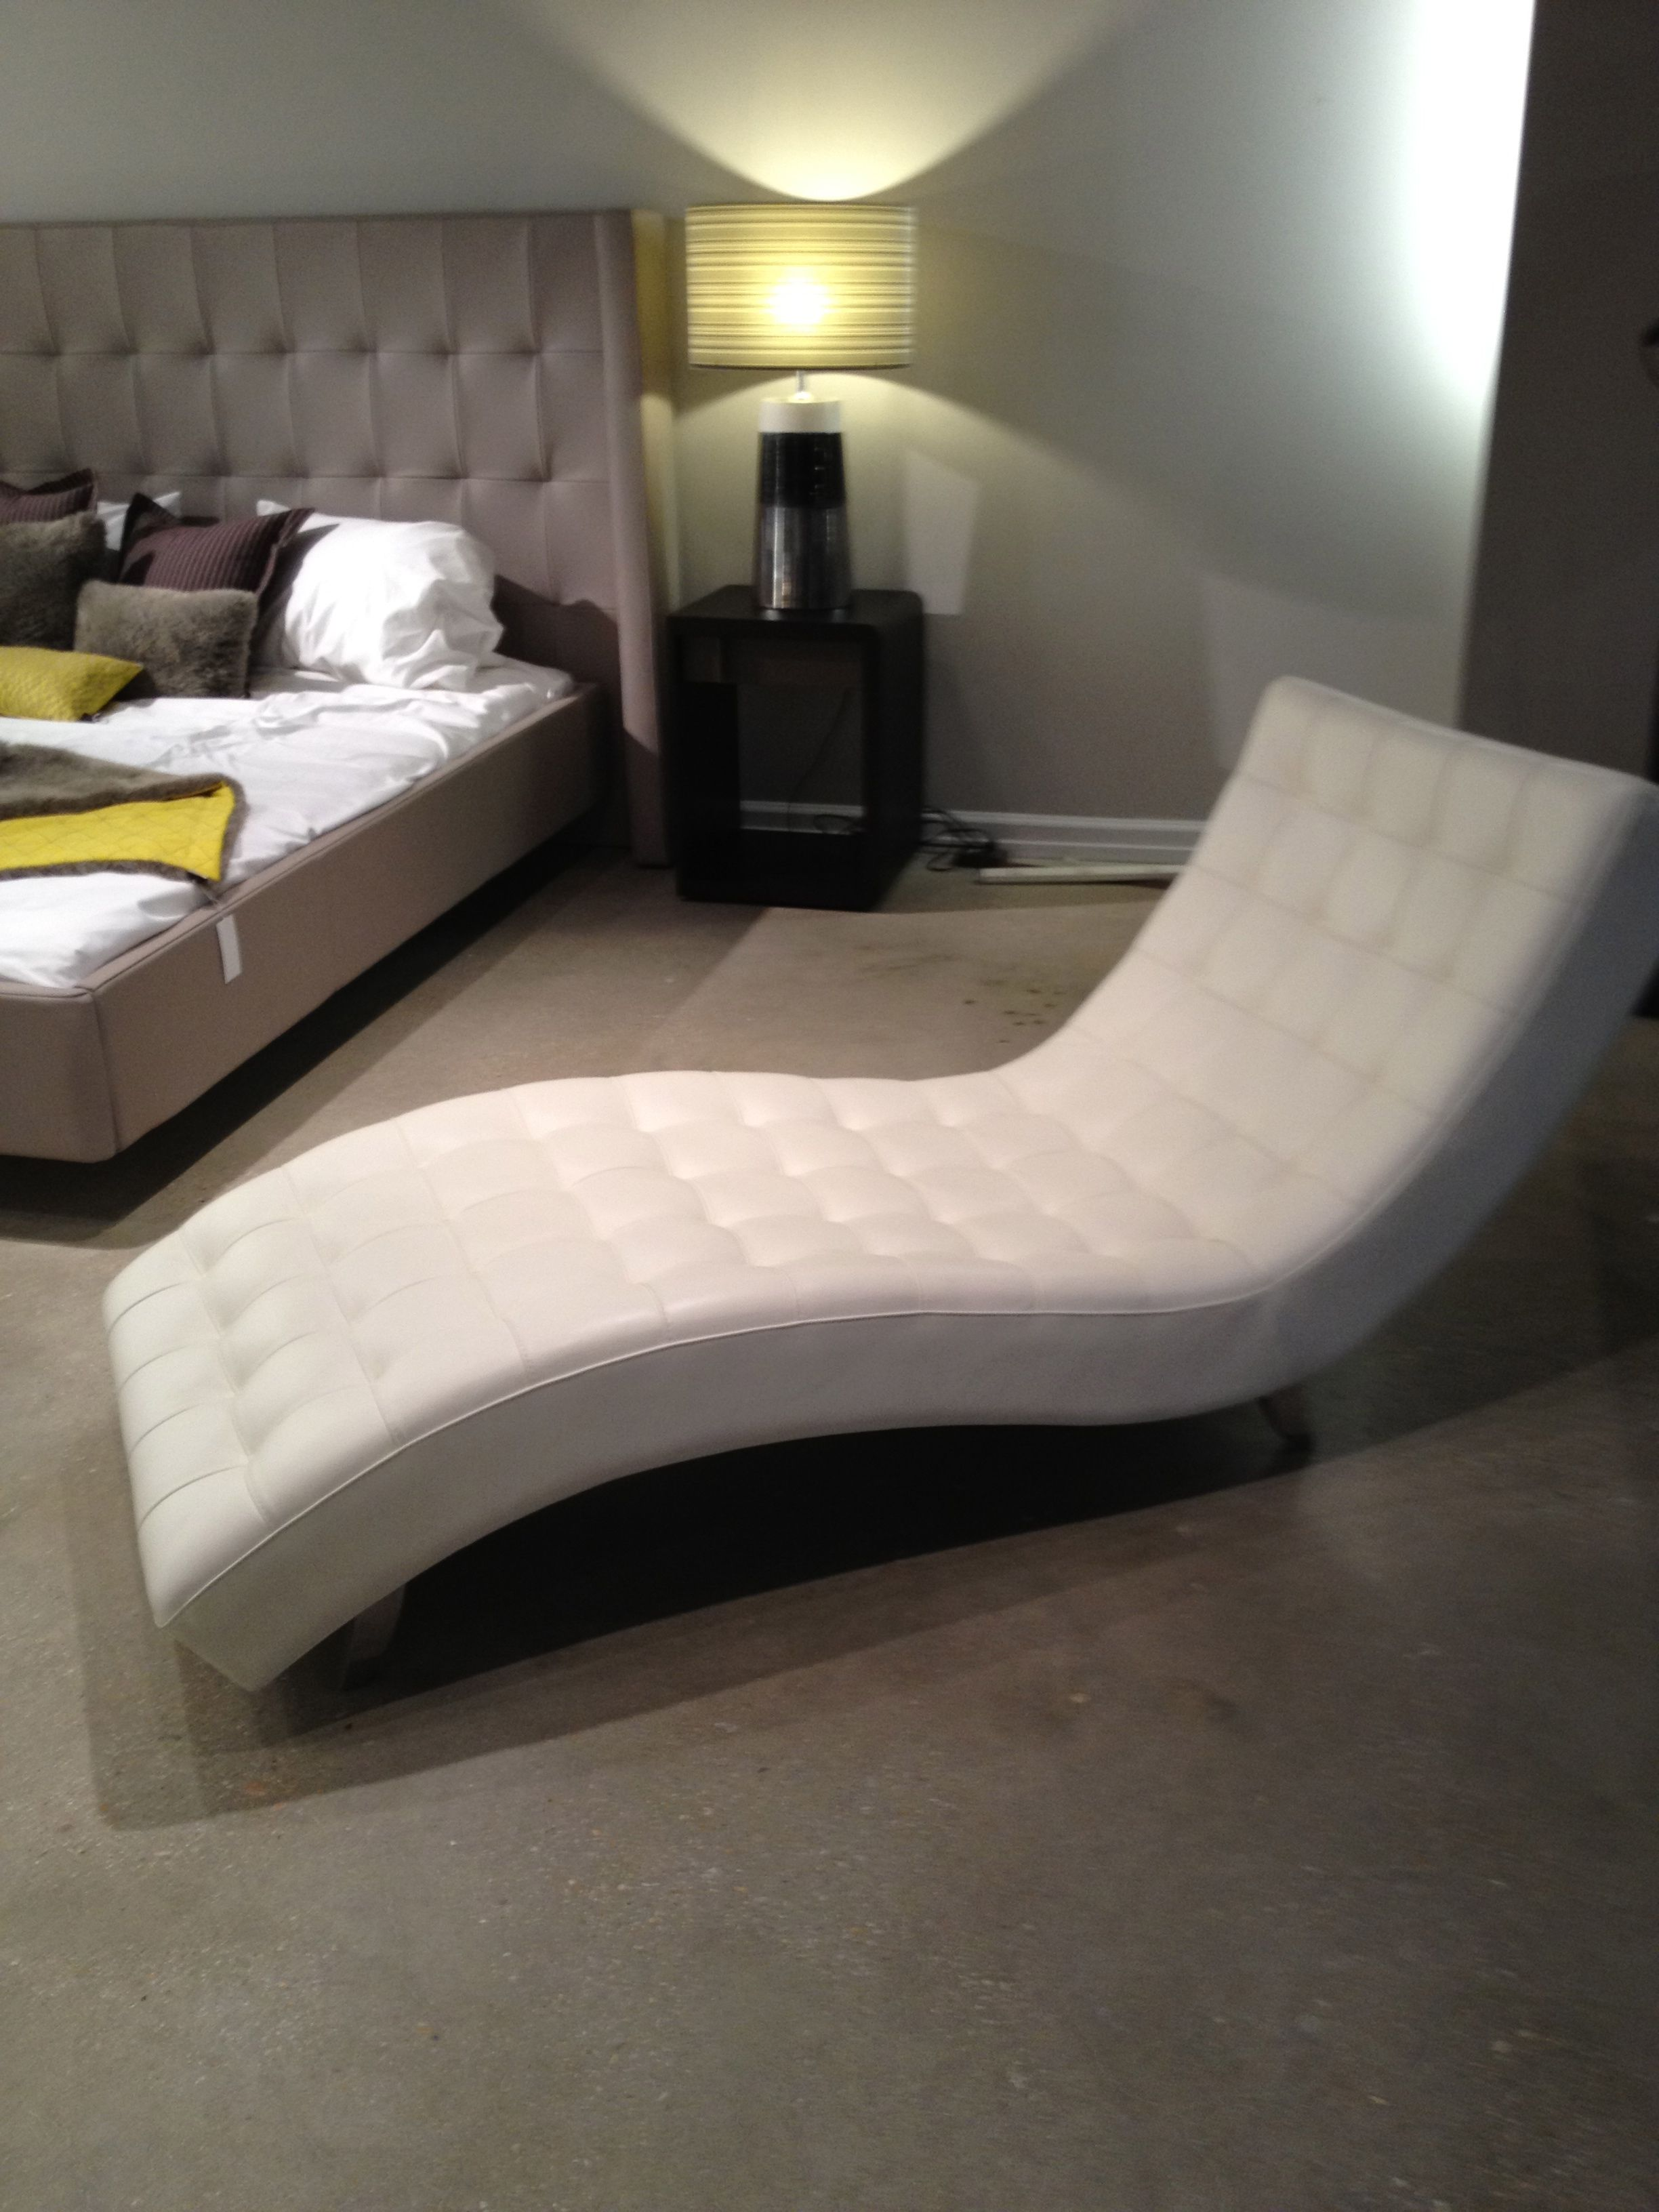 Chaise Lounge For Bedroom Lounge Chair Bedroom Contemporary